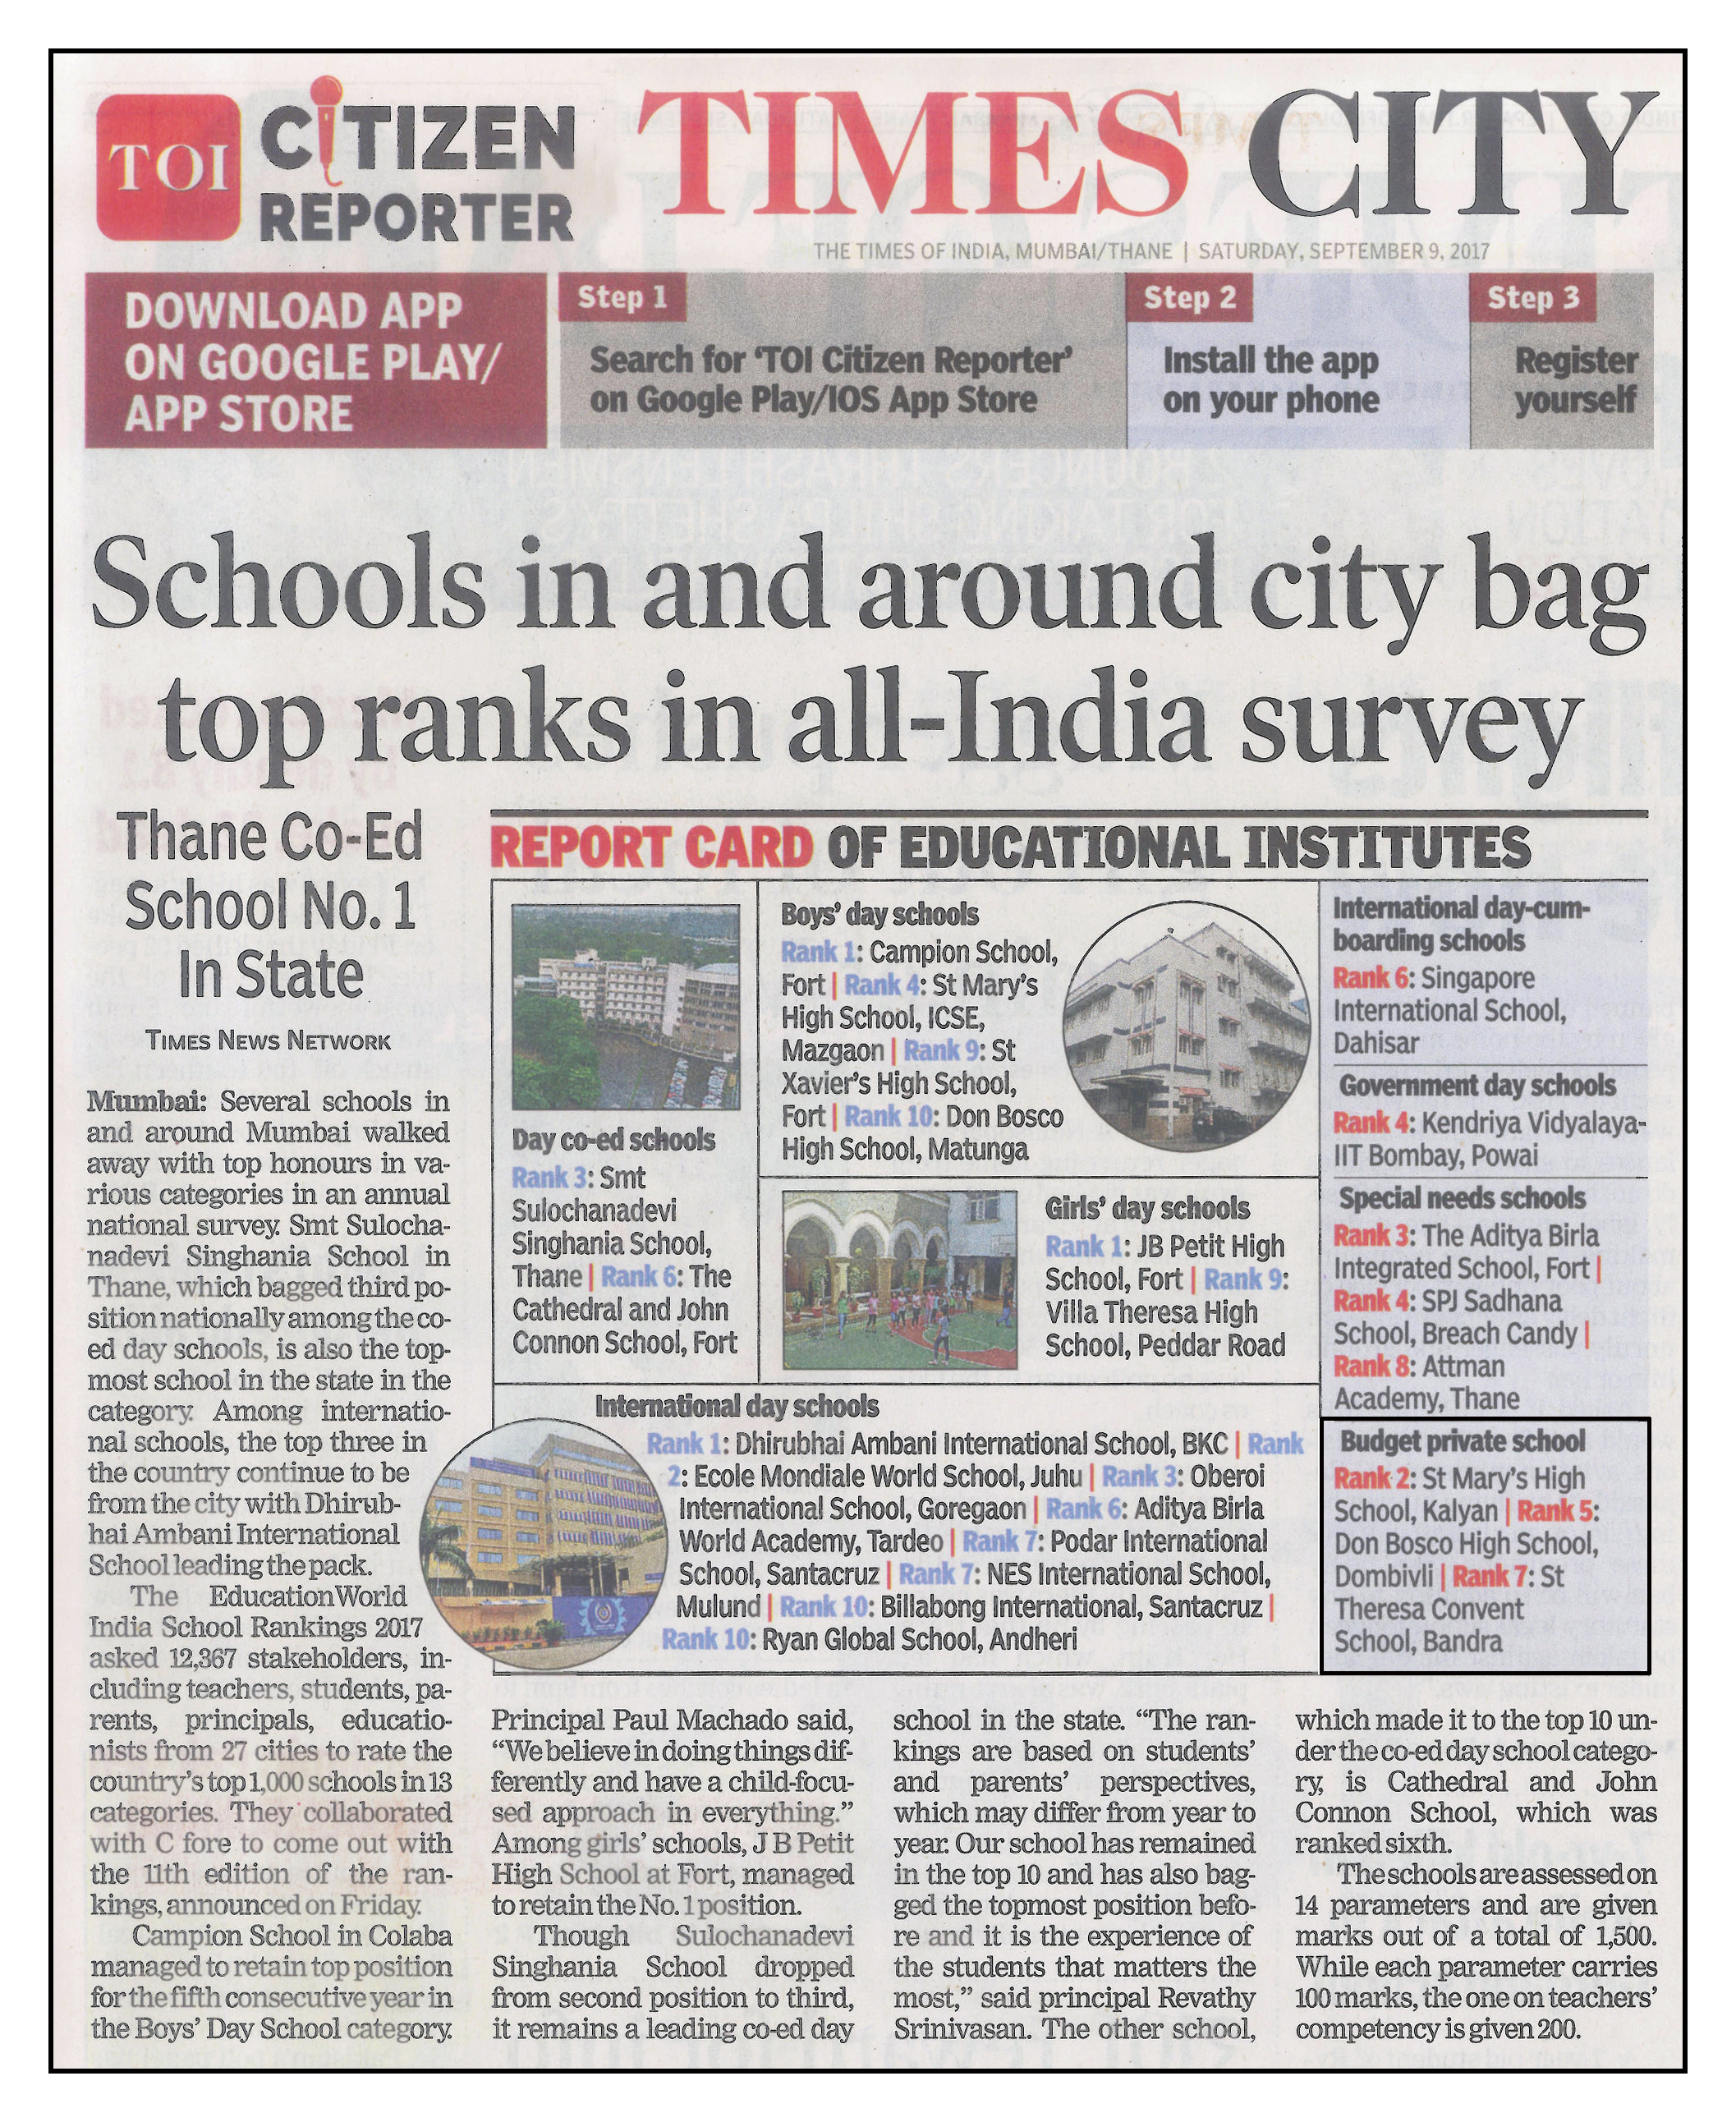 SMS_Budget Private School_TOI_9 9 2017 - St  Mary's High School